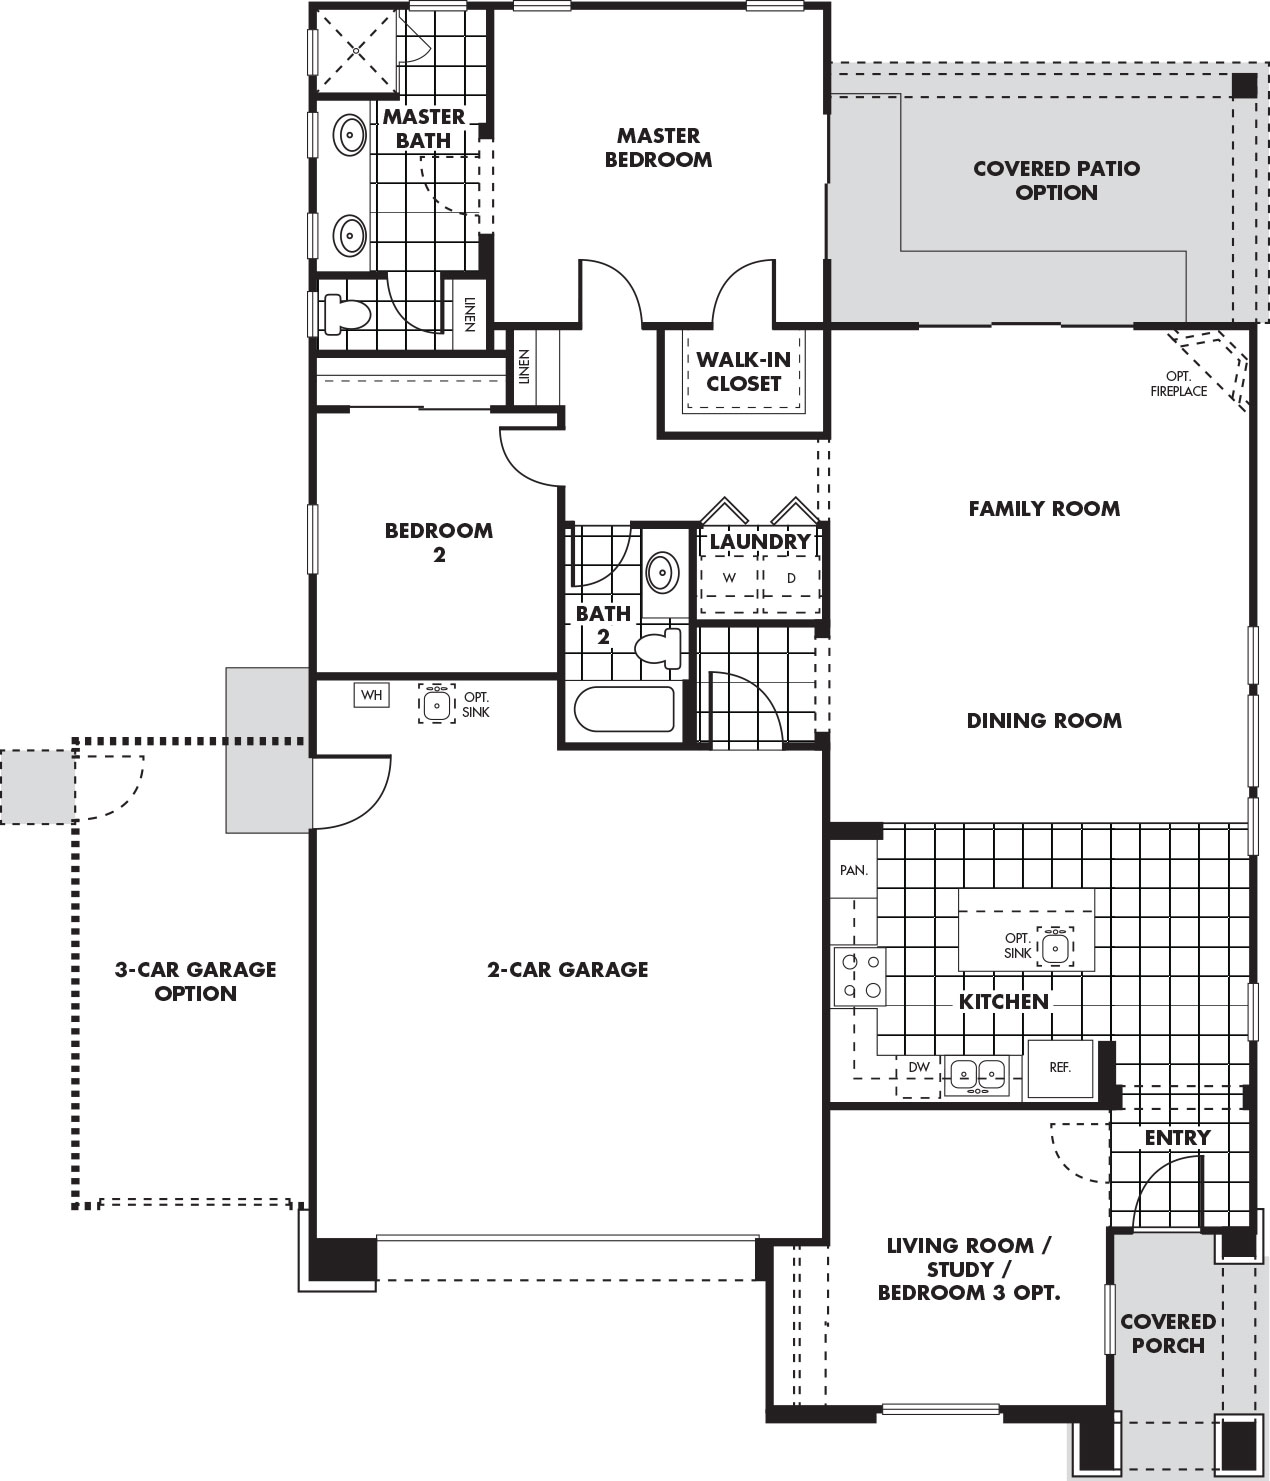 Terra Ranch Floor Plan - JKB Living on very simple ranch house plans, patio layout plans, ranch luxury floor plans, ranch hacienda floor plans, ranch house floor plans, ranch cabin floor plans, ranch duplex floor plans, ranch french country floor plans, home plans with open floor plans, ranch basement floor plans,